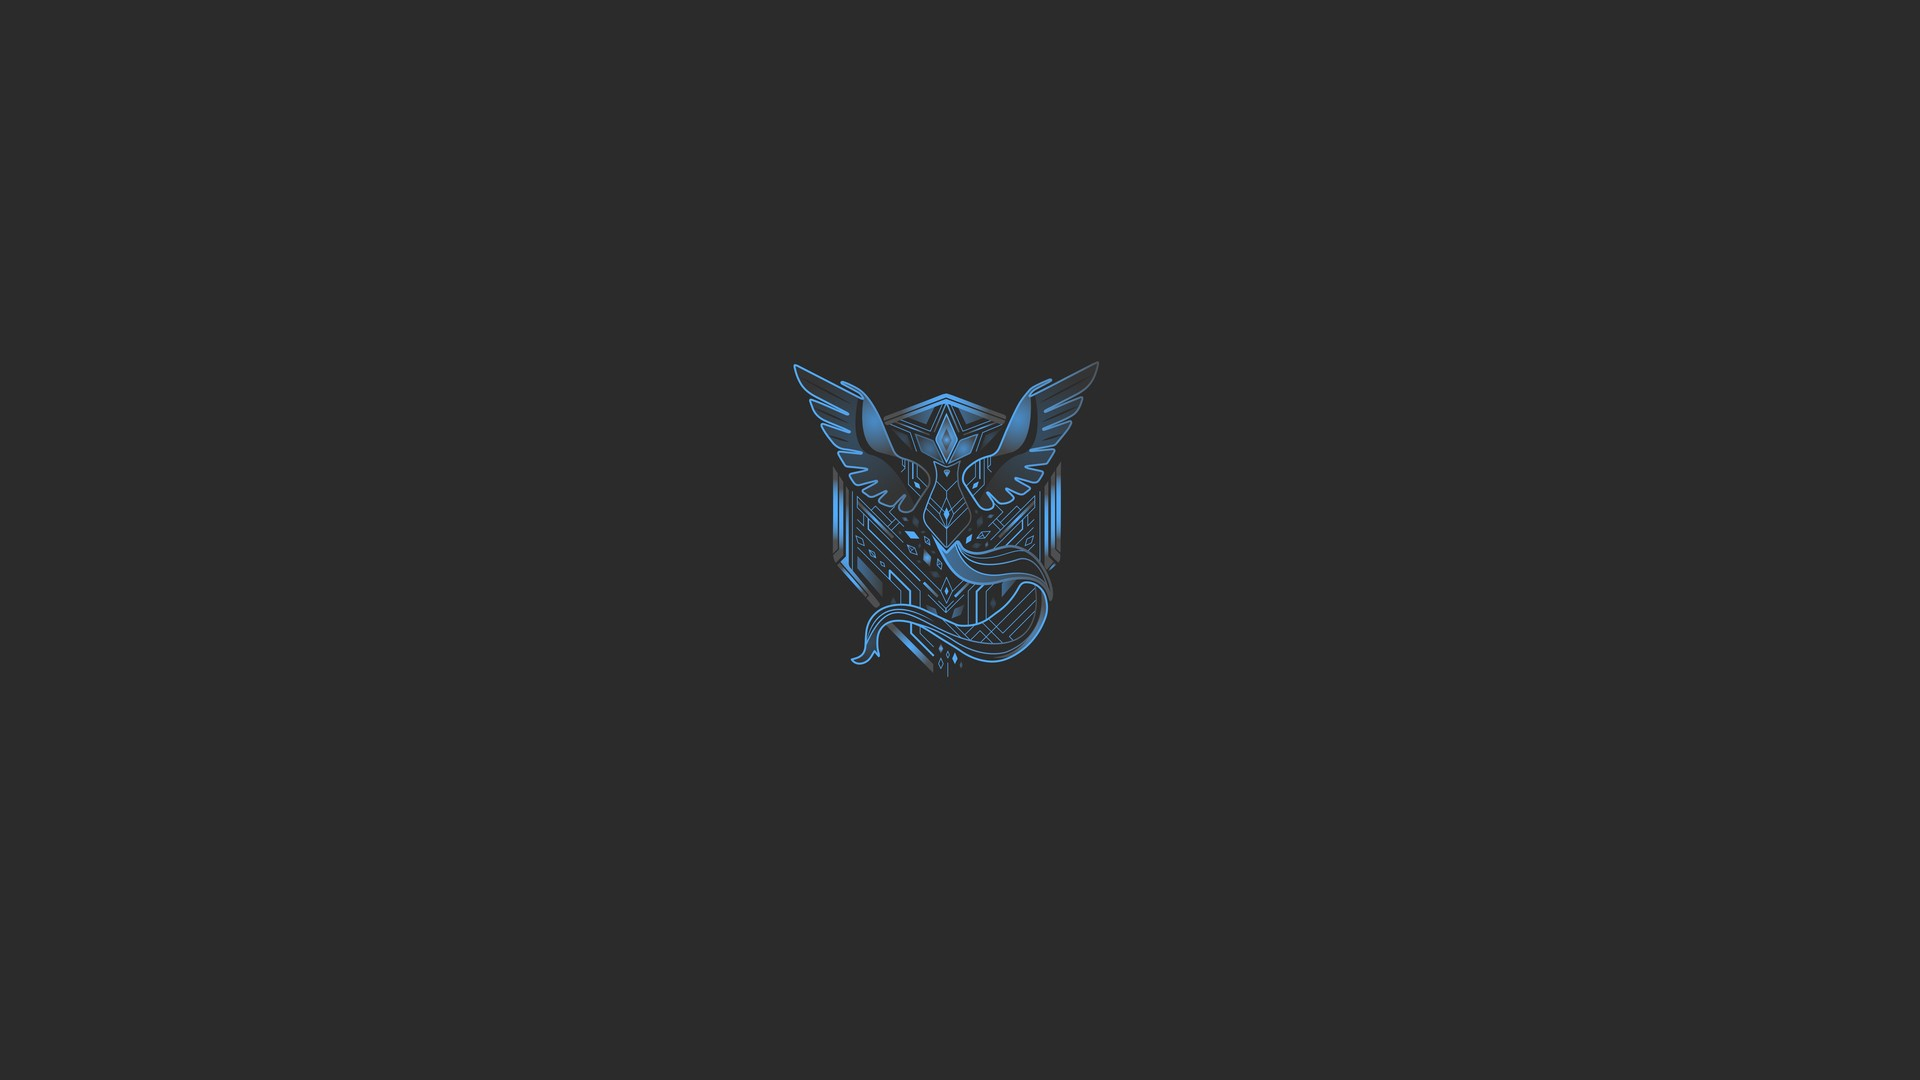 Team Mystic Wallpapers High Quality Is Cool Wallpapers